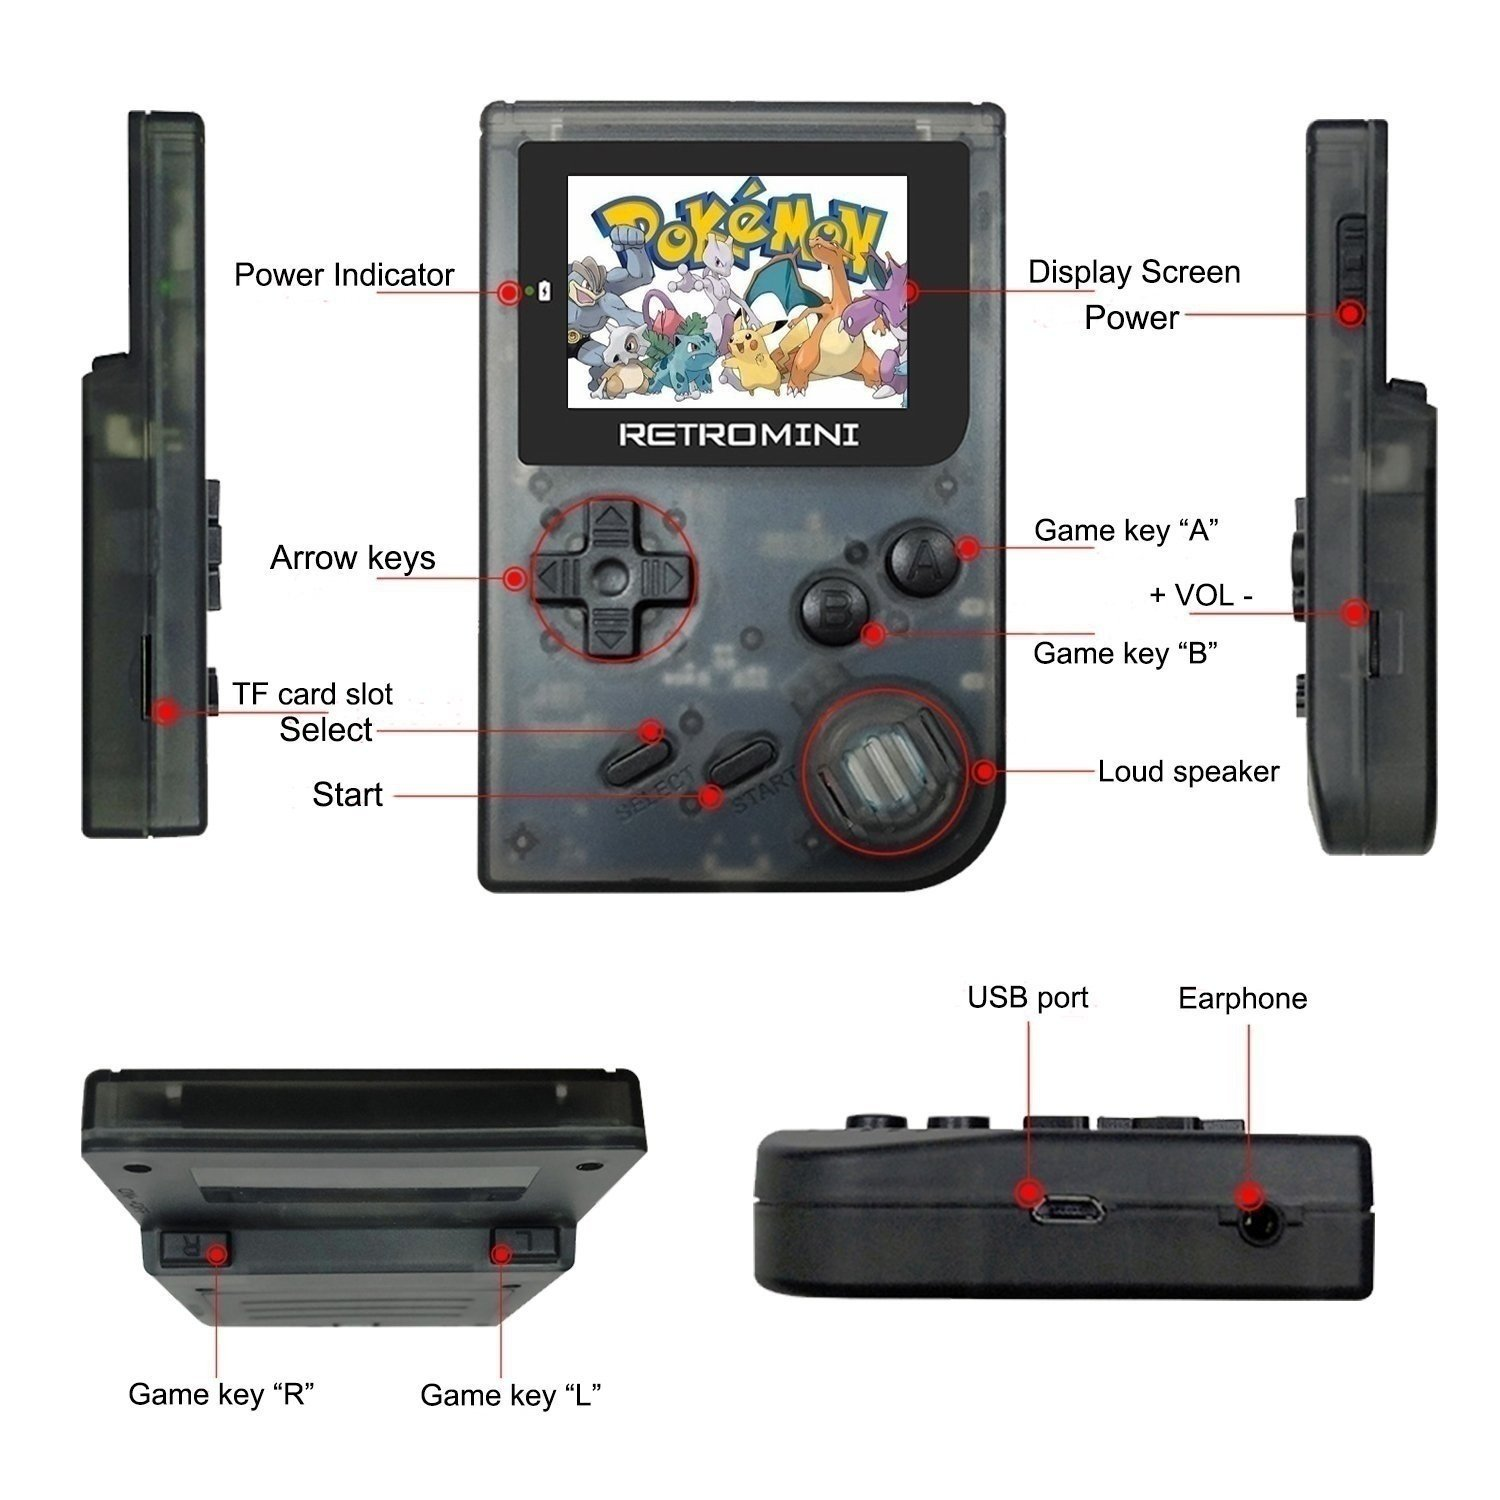 SODIAL Retro Game Console 32 Bit Portable Mini Handheld Game Players Built-in 940 for GBA Classic Games Best Gift for Kids Black by SODIAL (Image #5)